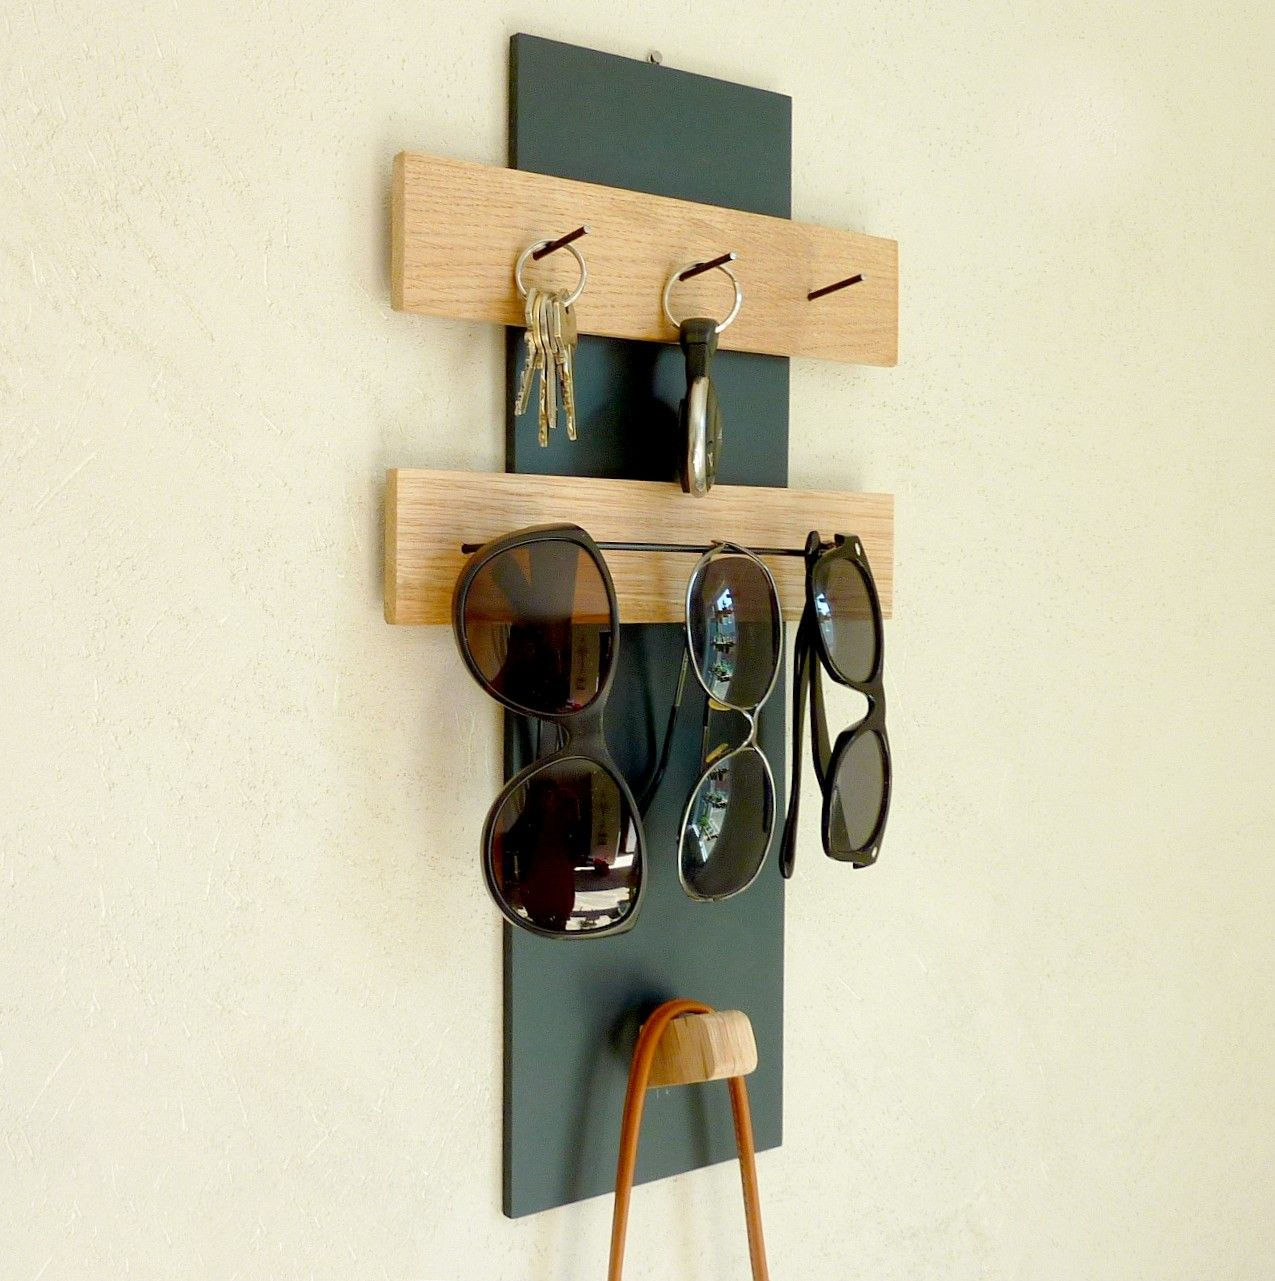 Organiseur D Entree Mural Support Cles Lunettes Support Mural Home Decor Diy Deco